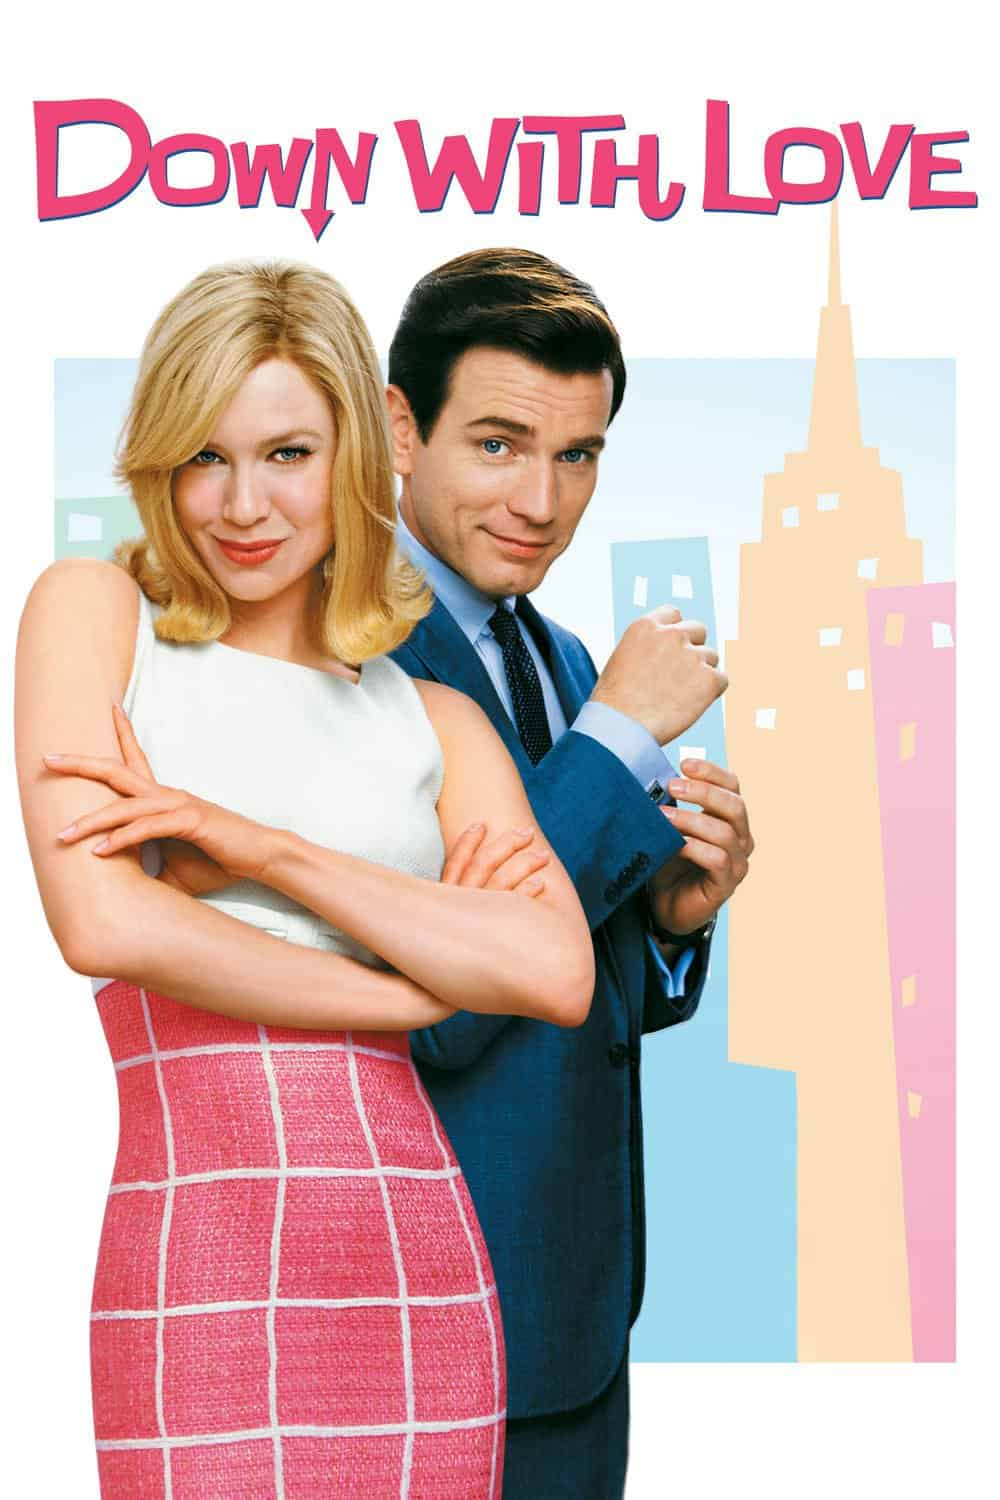 Down with Love, 2003